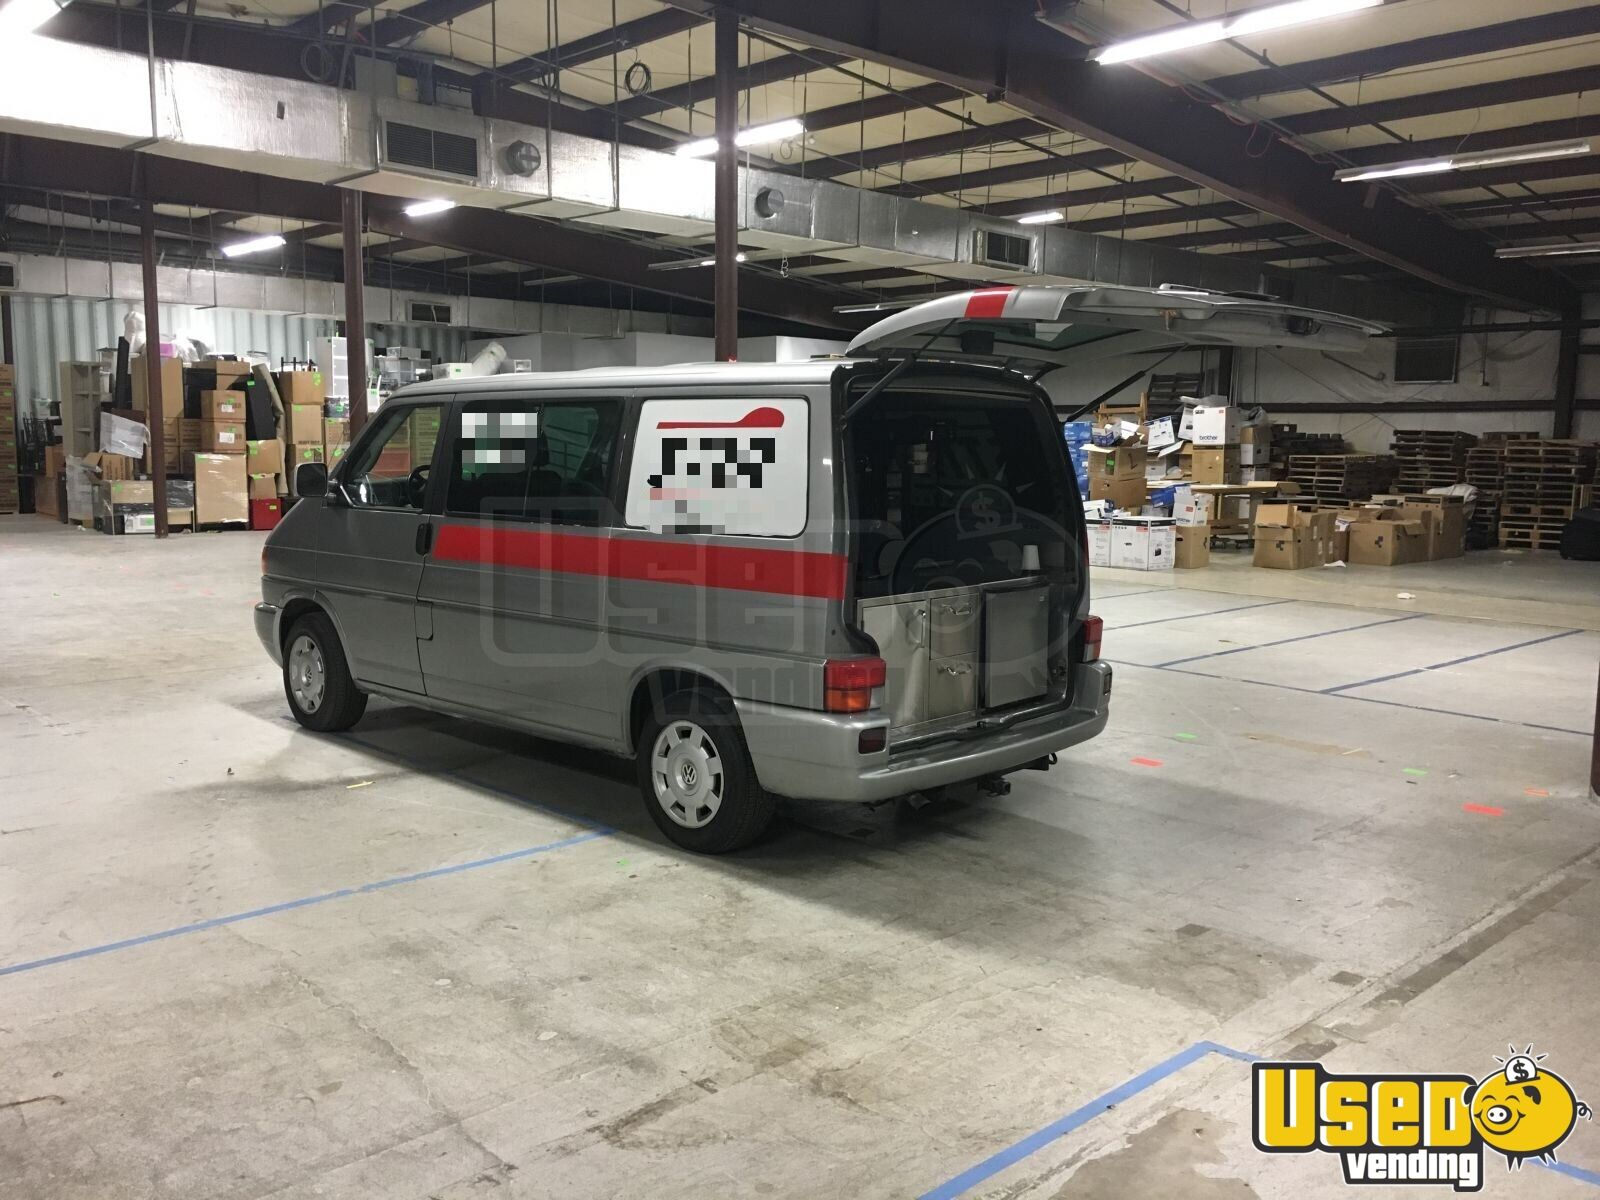 2001 Volkswagen Eurovan Coffee Truck Cabinets Indiana Gas Engine for Sale - 2